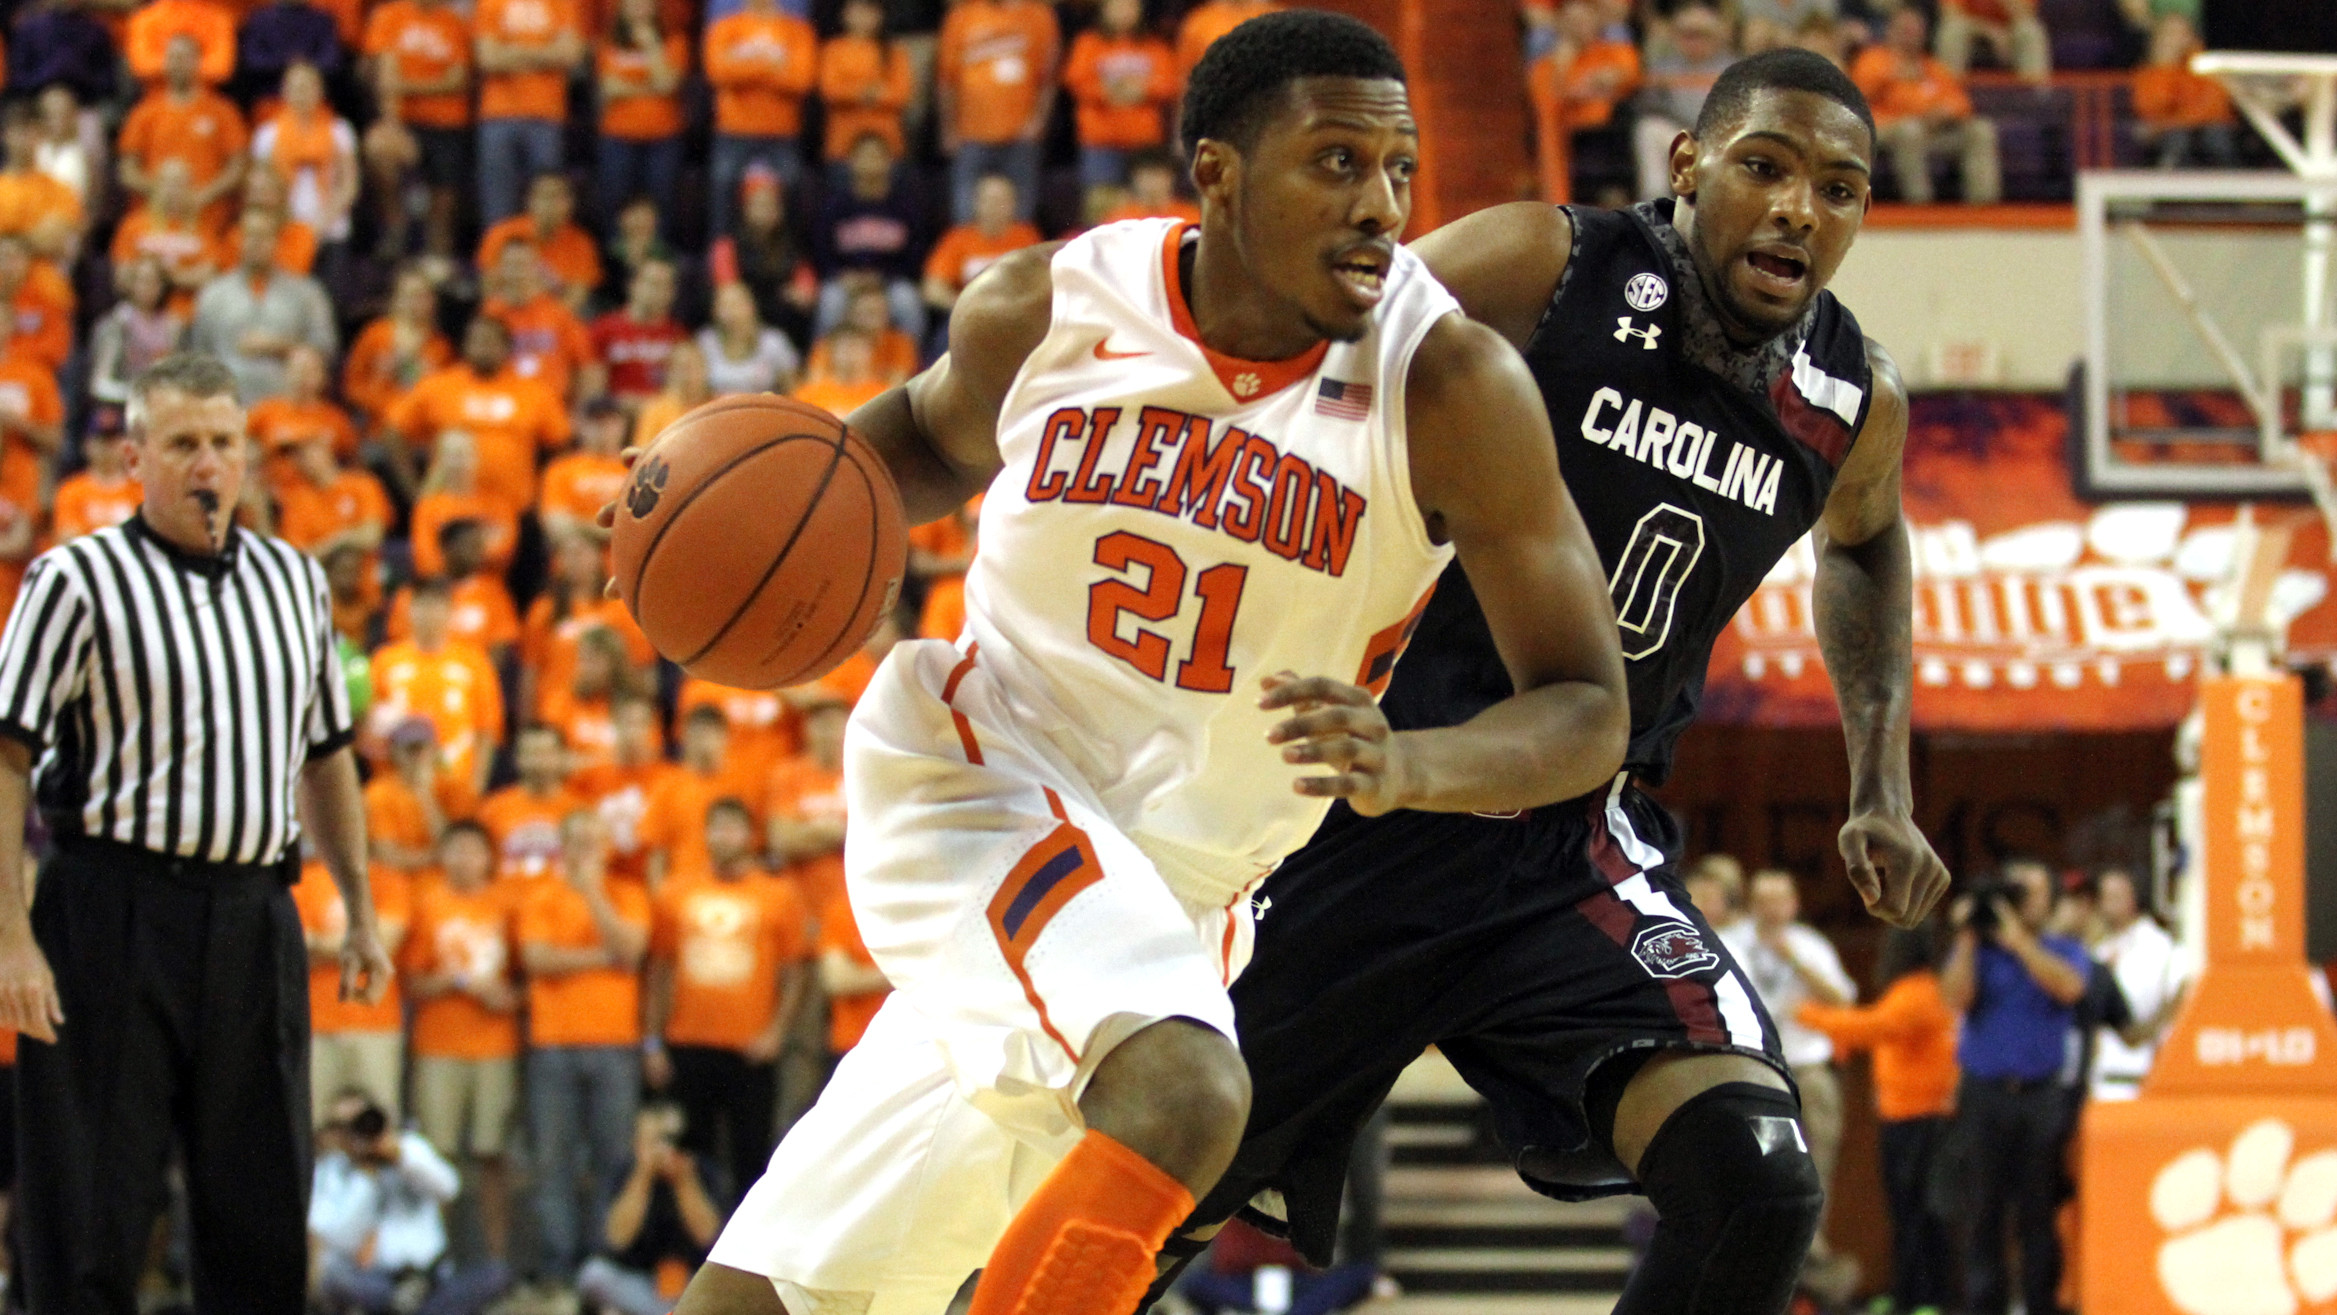 Tigers Face Furman Saturday at 7 PM at Littlejohn Coliseum